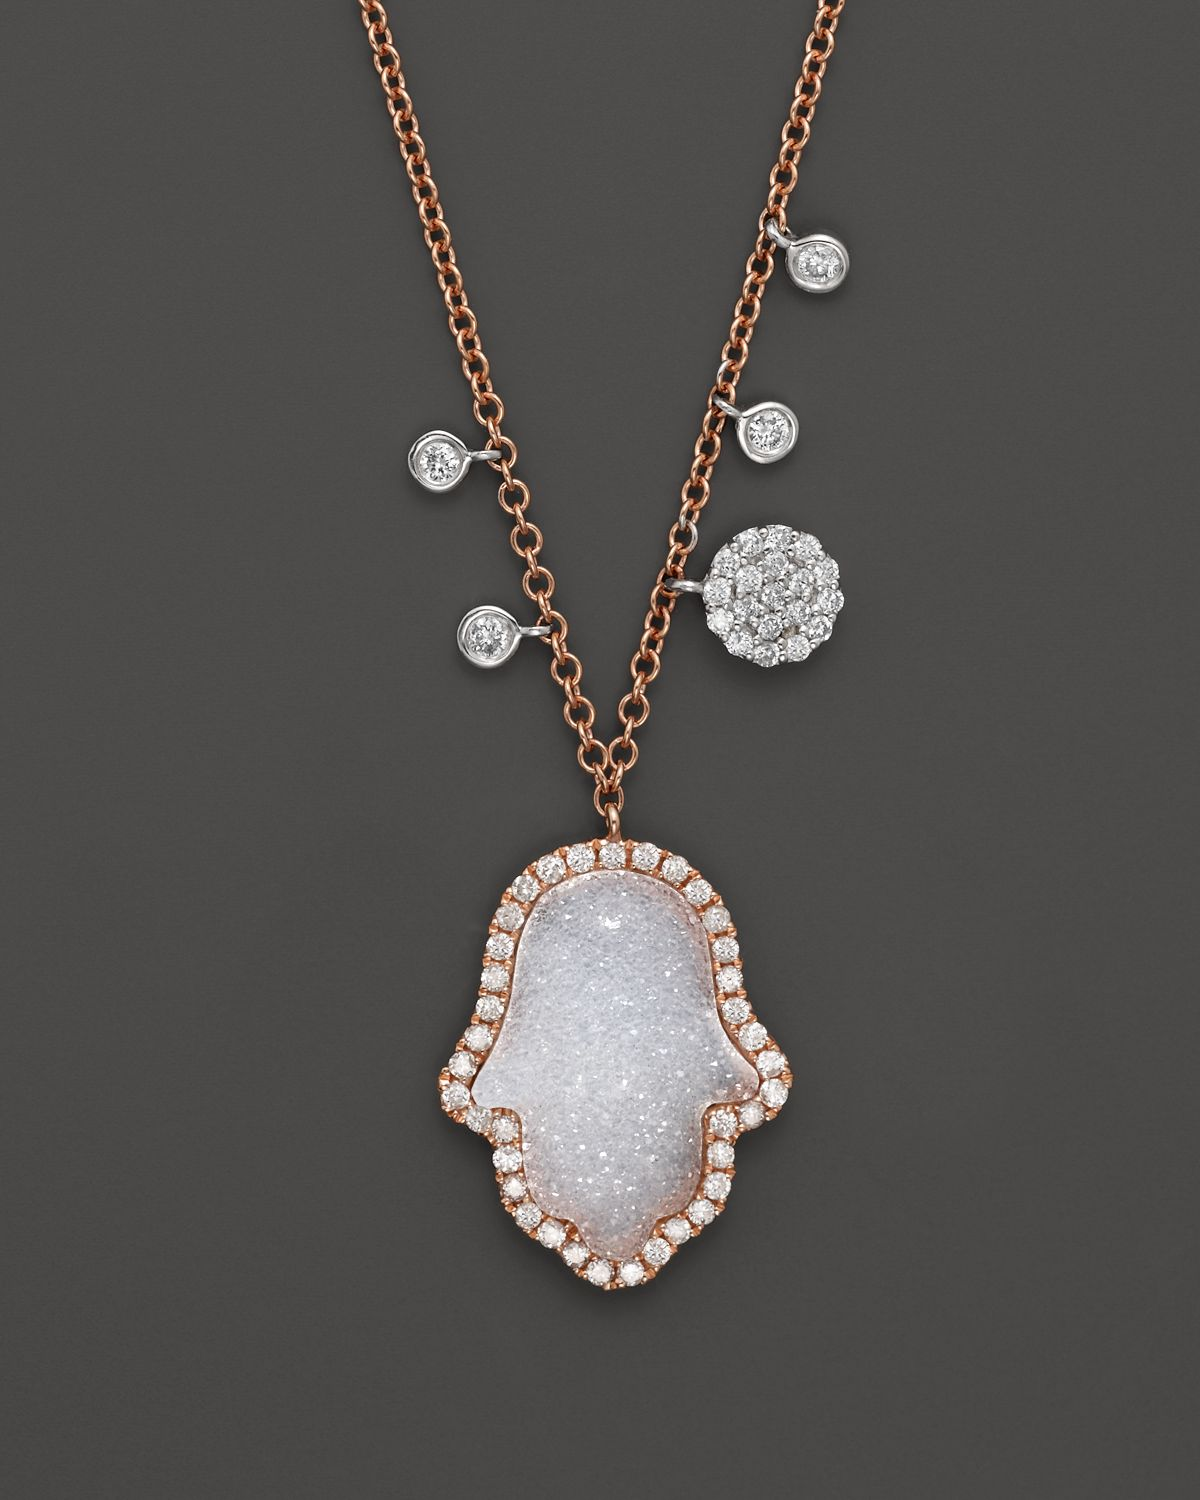 Lyst meira t 14k rose gold diamond and druzy hamsa necklace in white gallery mozeypictures Images